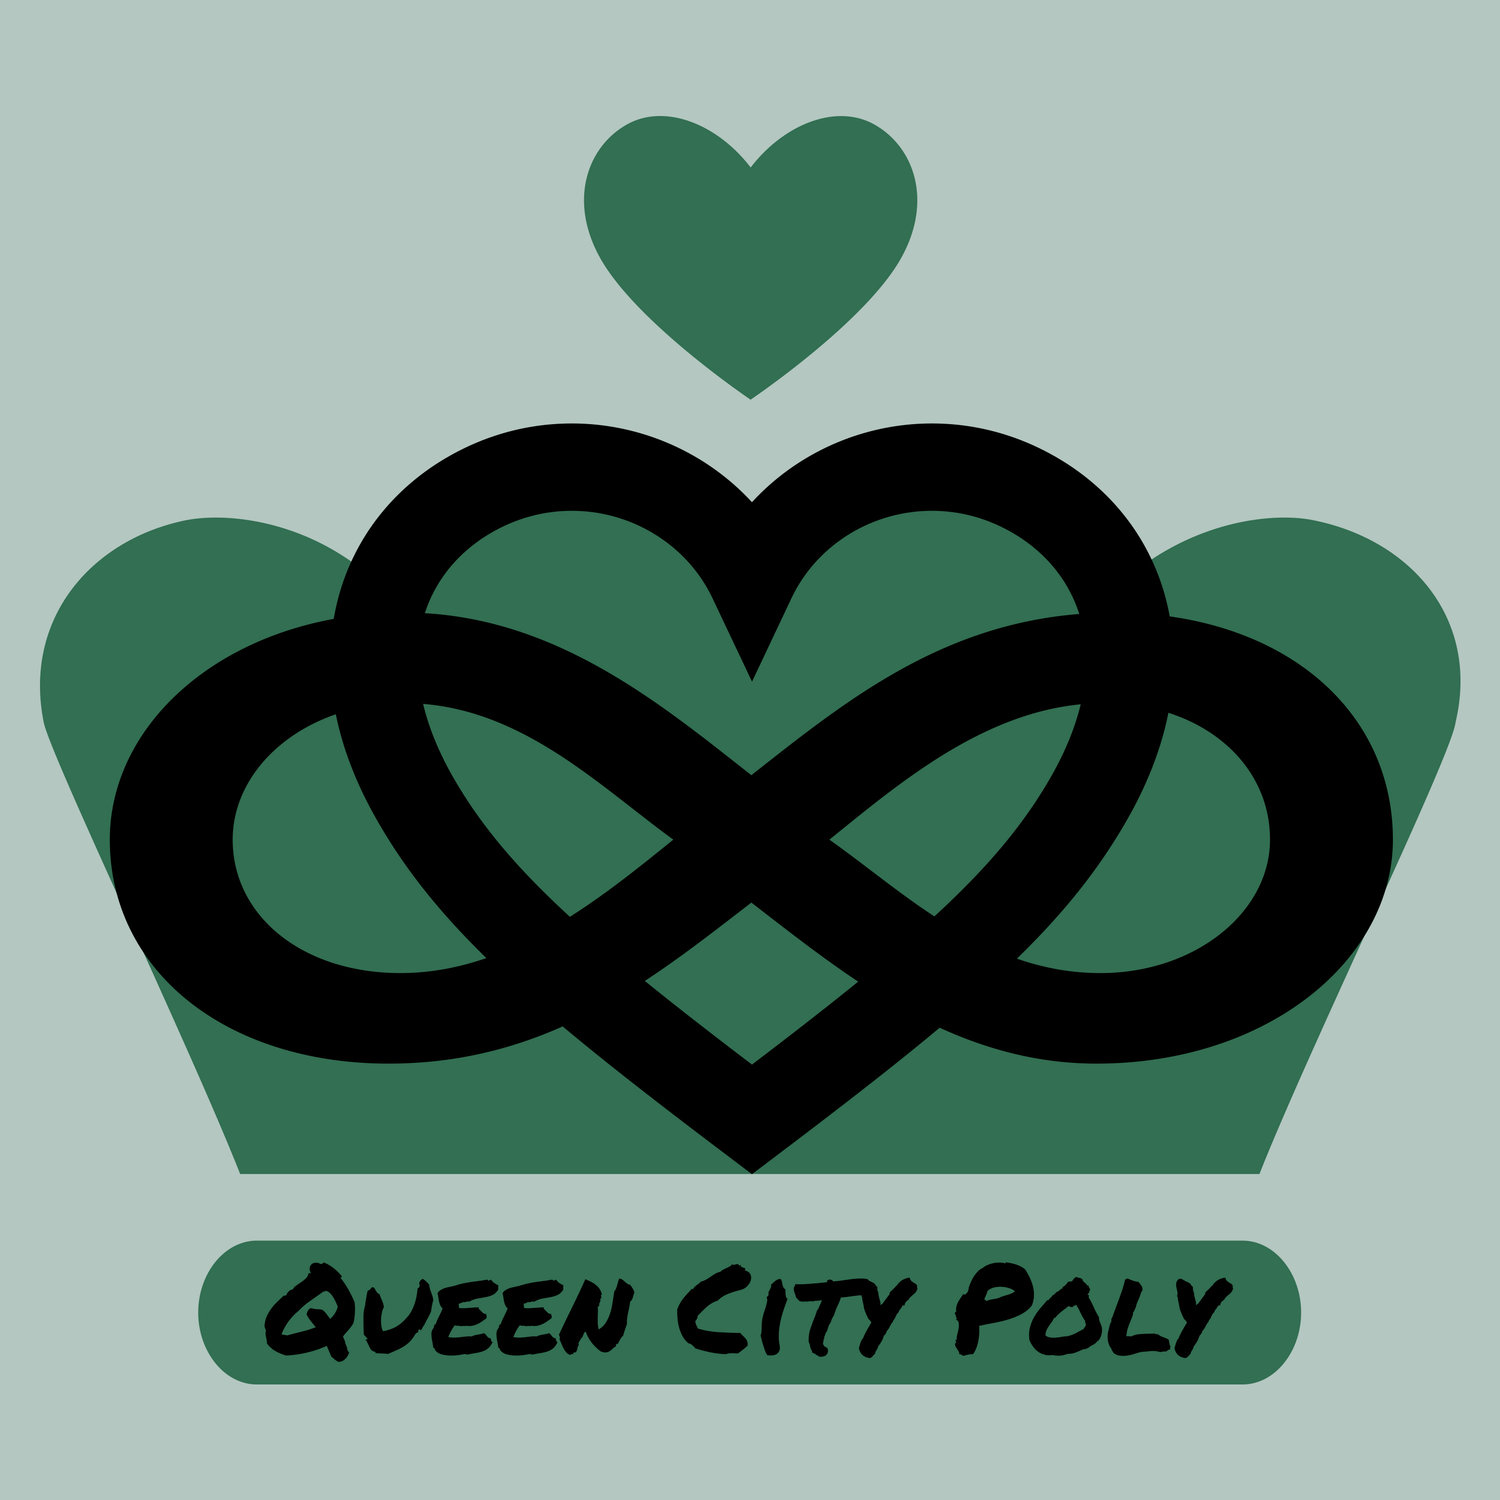 Queen City Poly